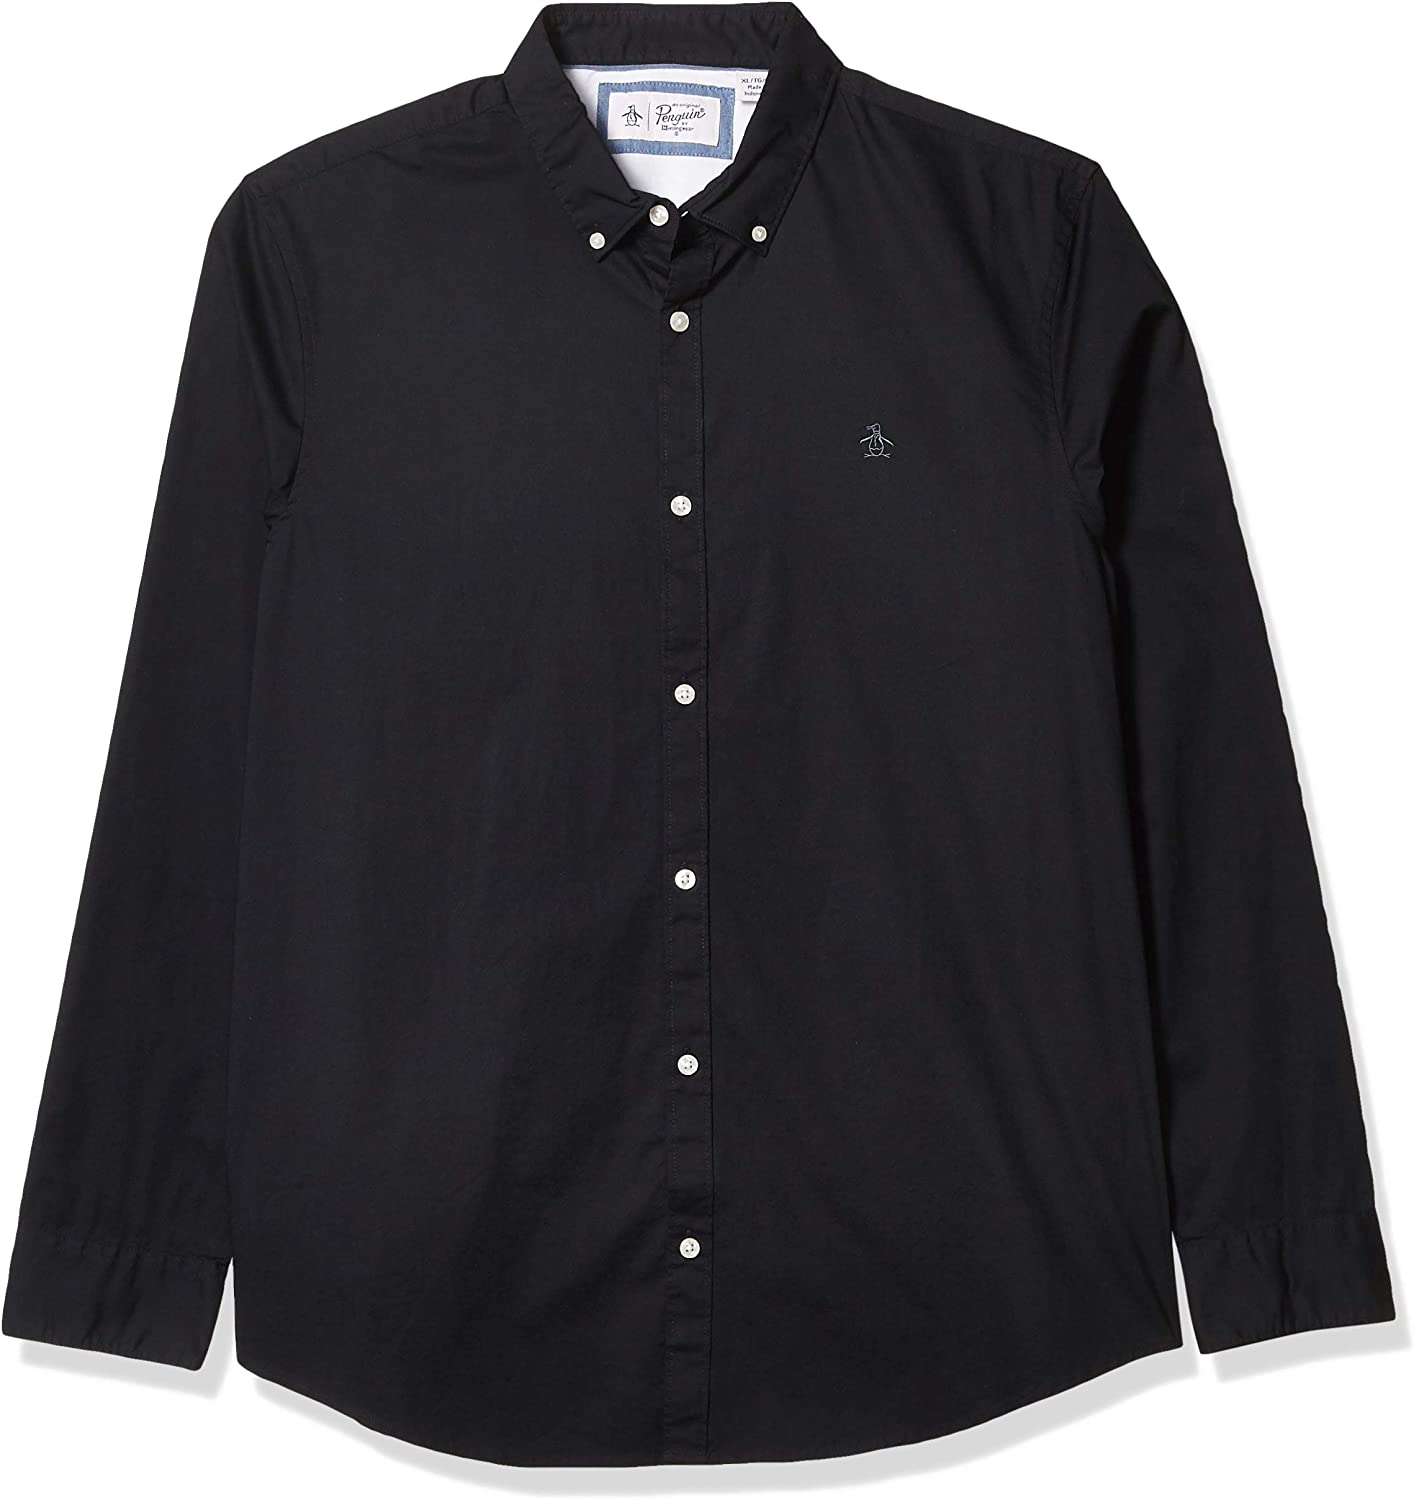 Original Penguin Men's Long Sleeve Core Poplin Button Down Shirt with Stretch